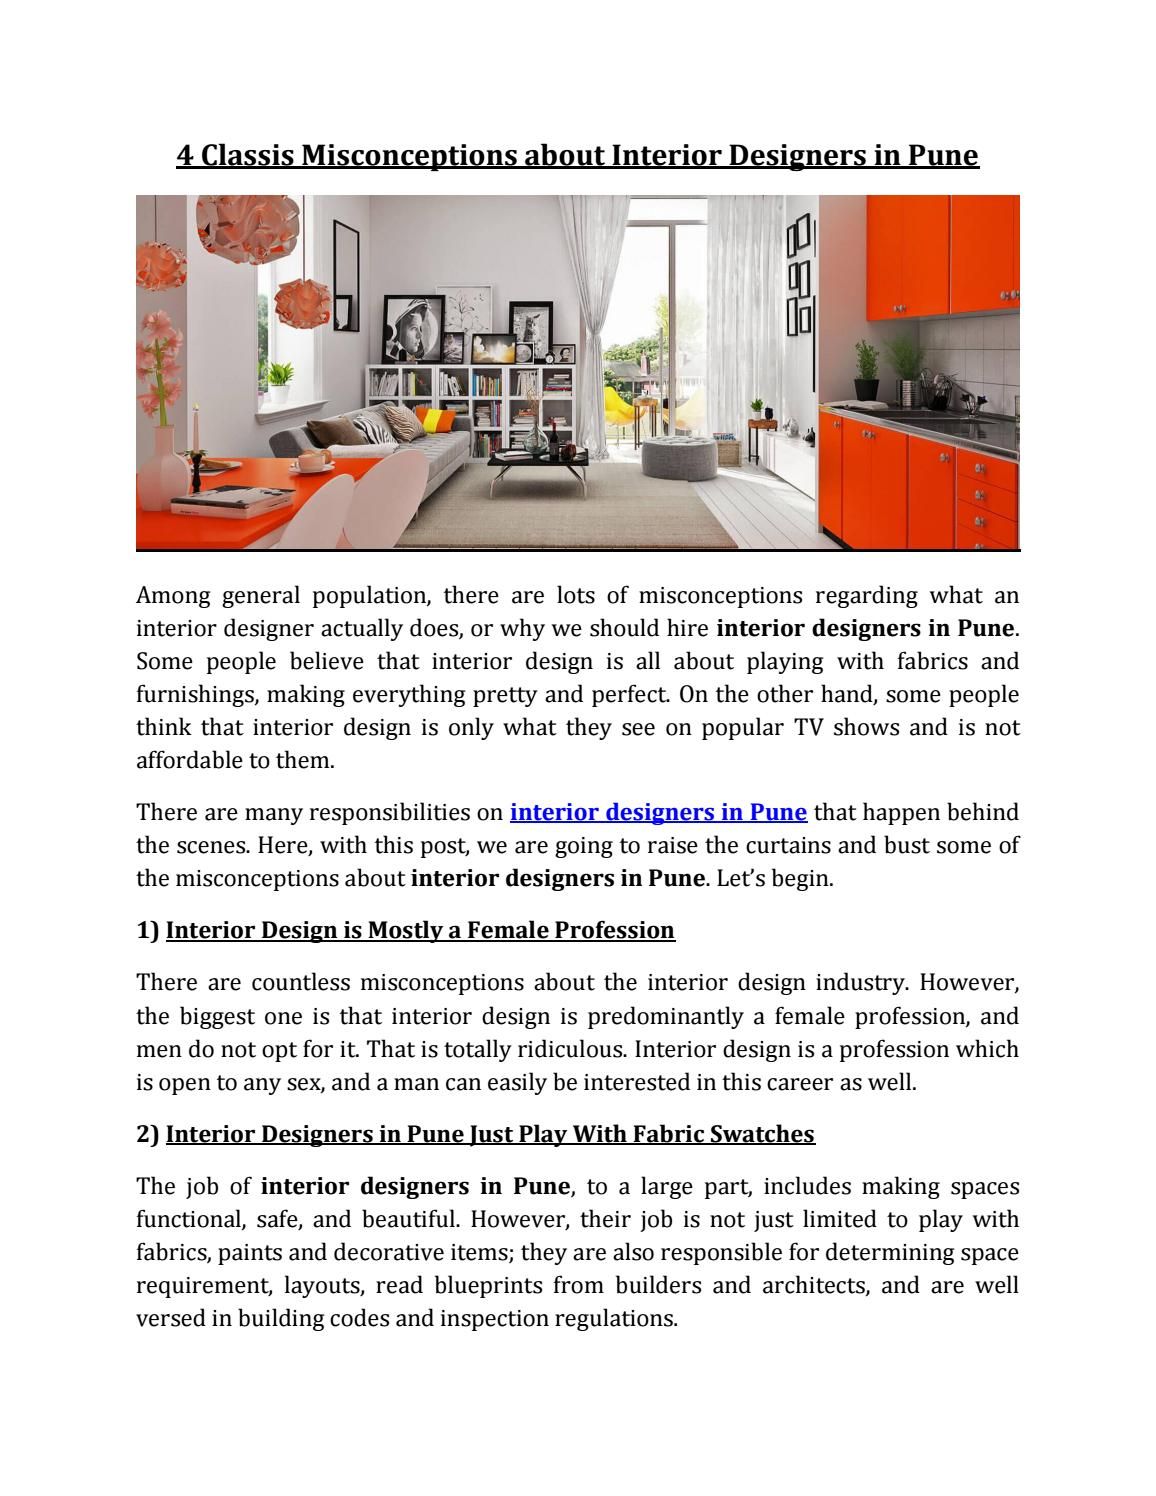 4 Classis Misconceptions About Interior Designers In Pune By